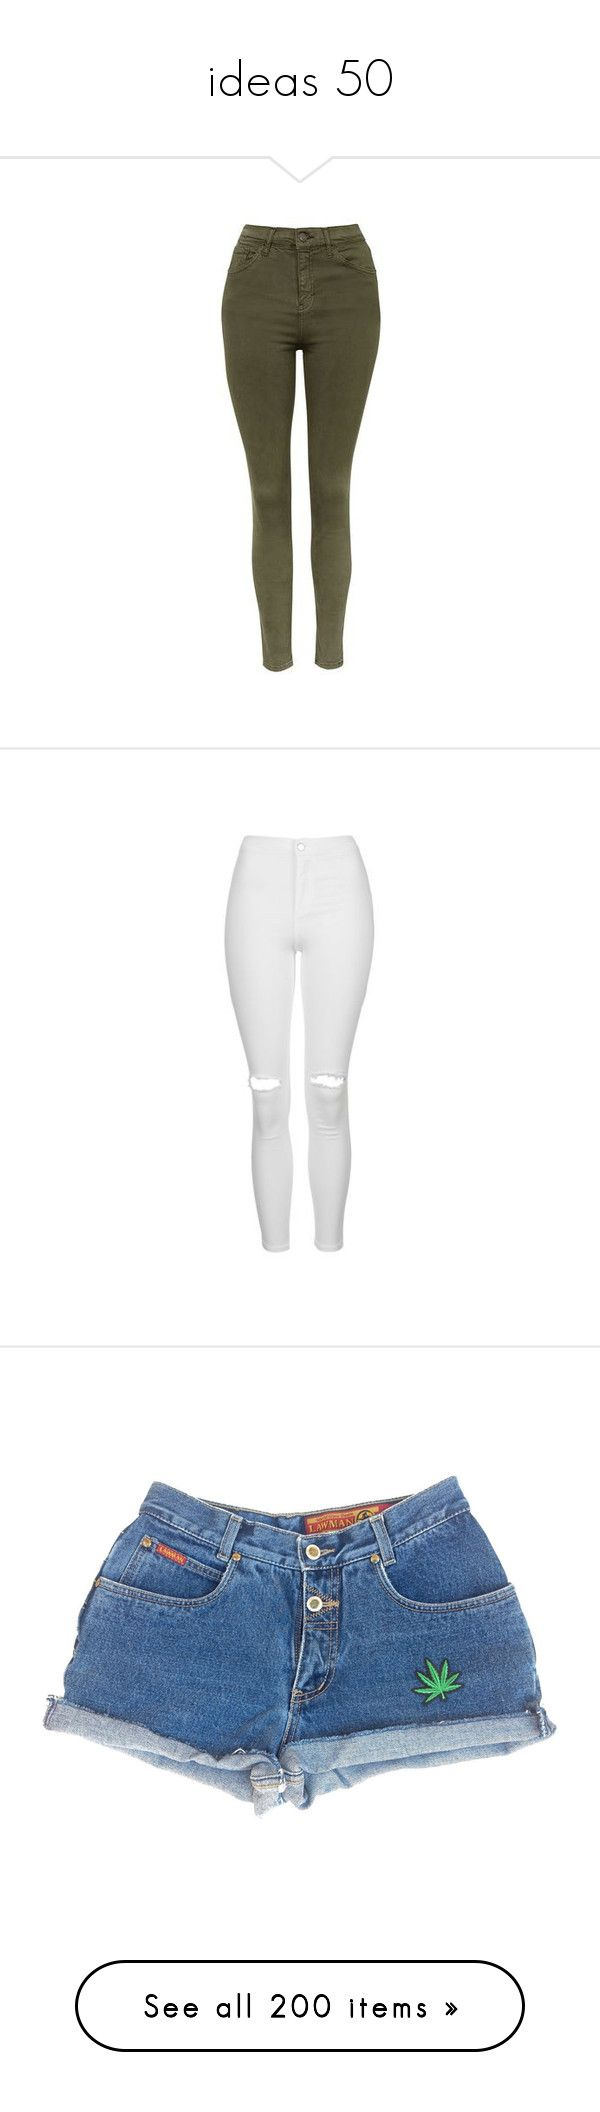 """""""ideas 50"""" by tomlinsonsadidas ❤ liked on Polyvore featuring jeans, pants, bottoms, calça, pantalones, khaki, topshop skinny jeans, high-waisted jeans, denim skinny jeans and rock n roll jeans"""